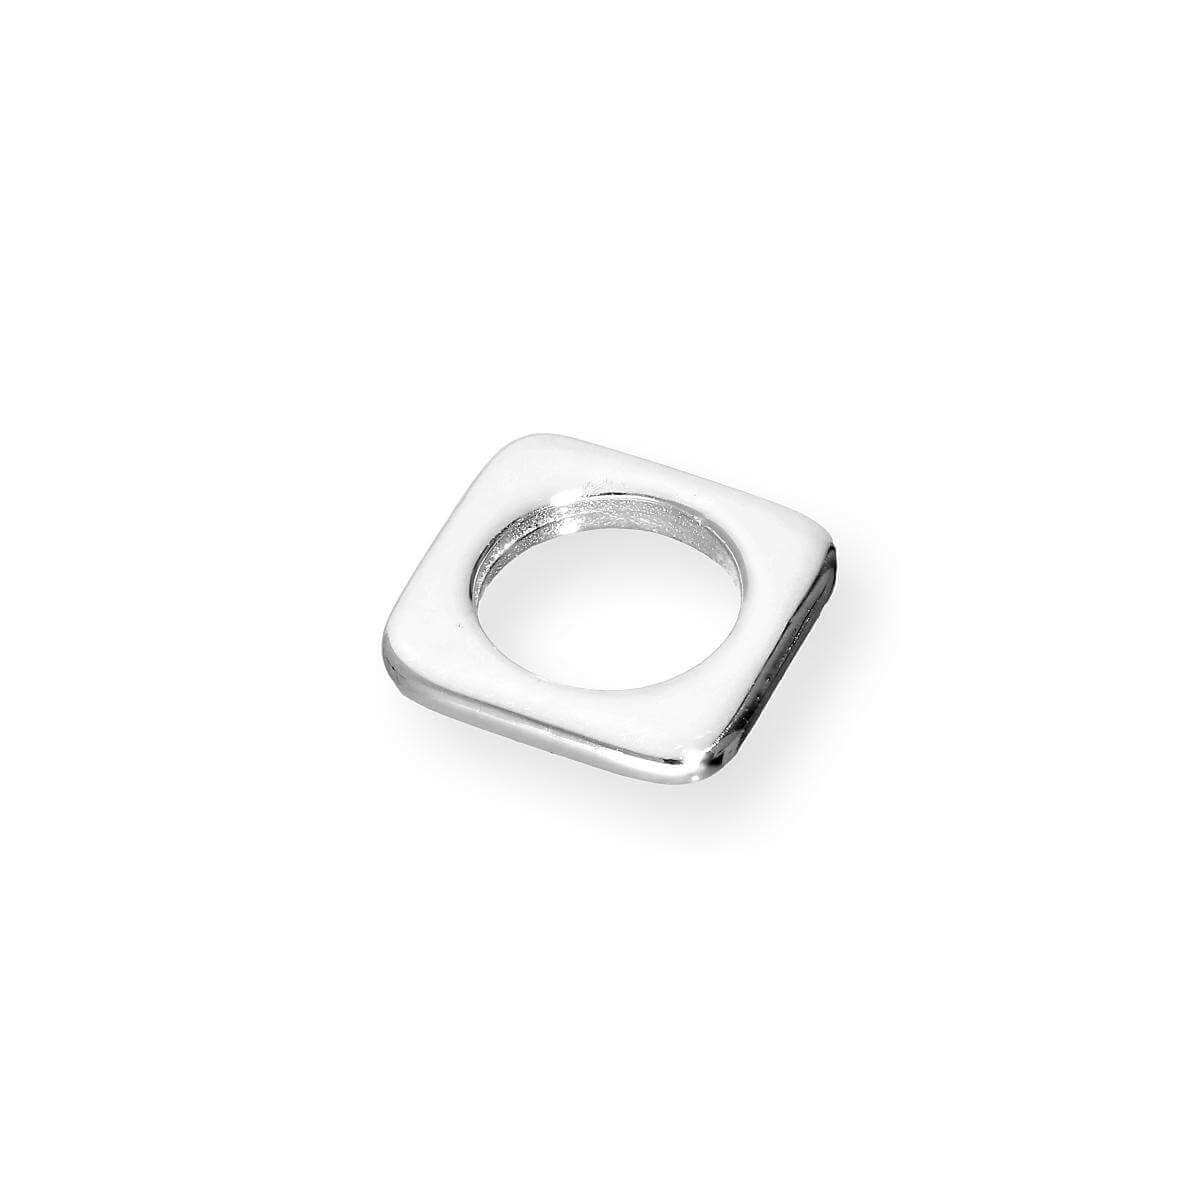 Slim Sterling Silver Square Bead Charm